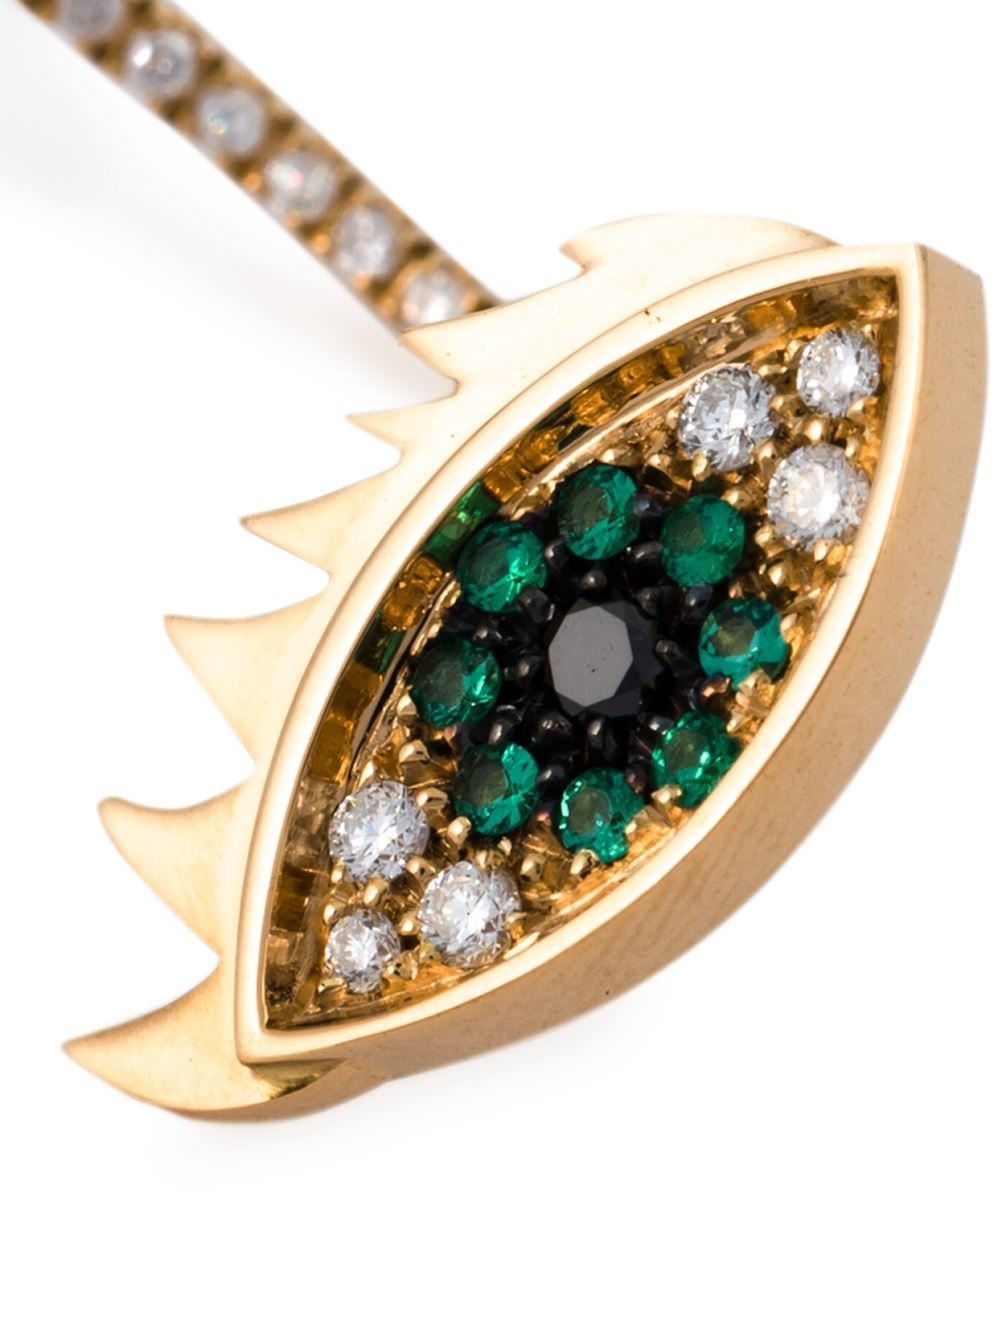 Eyes on me piercing emerald and diamond earring - Metallic Delfina Delettrez rMANhILwK